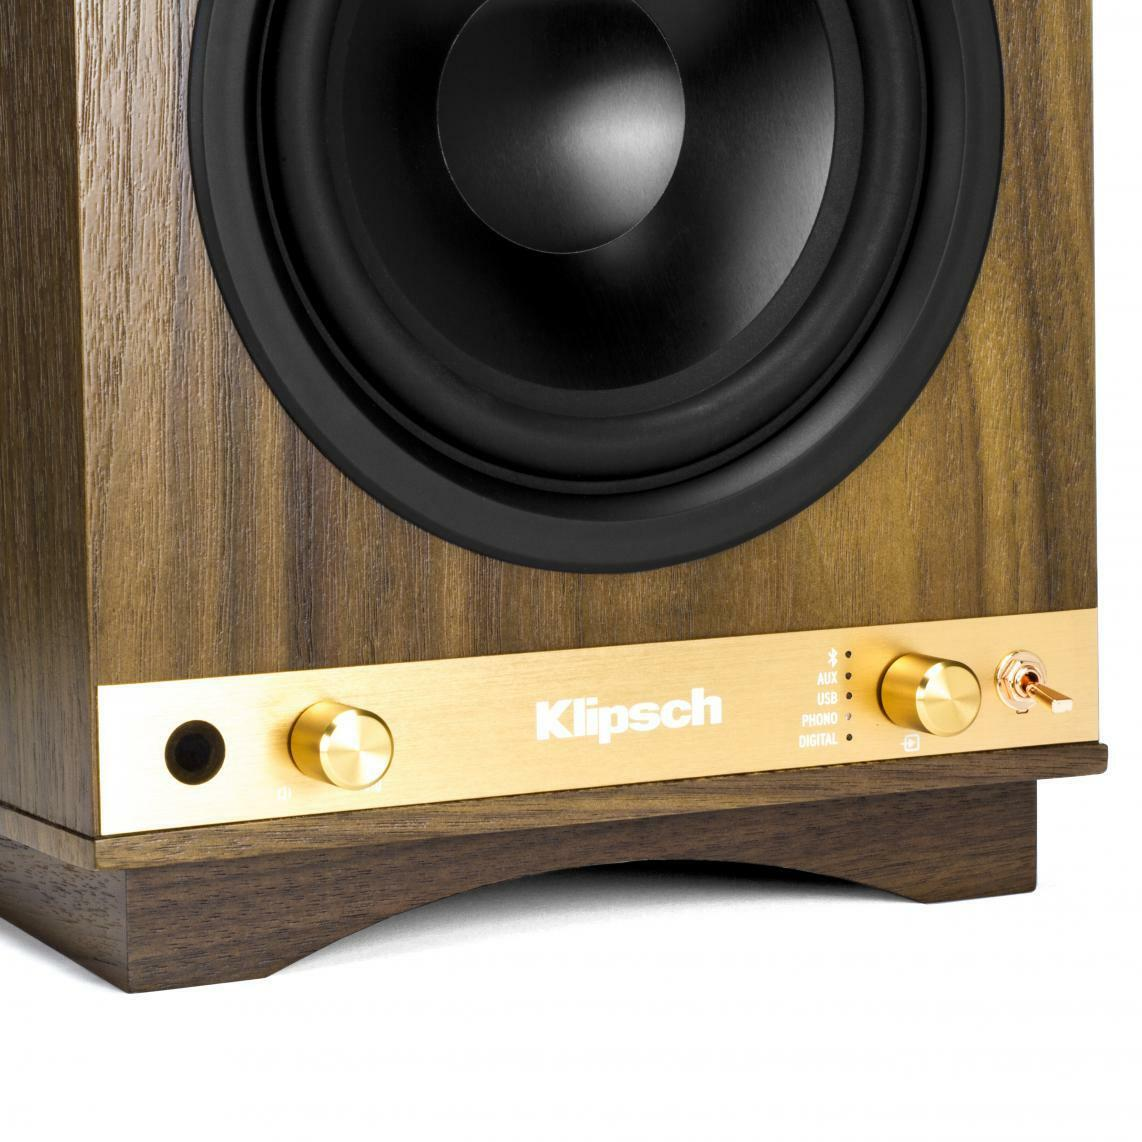 pair bookshelf r klipsch speakers